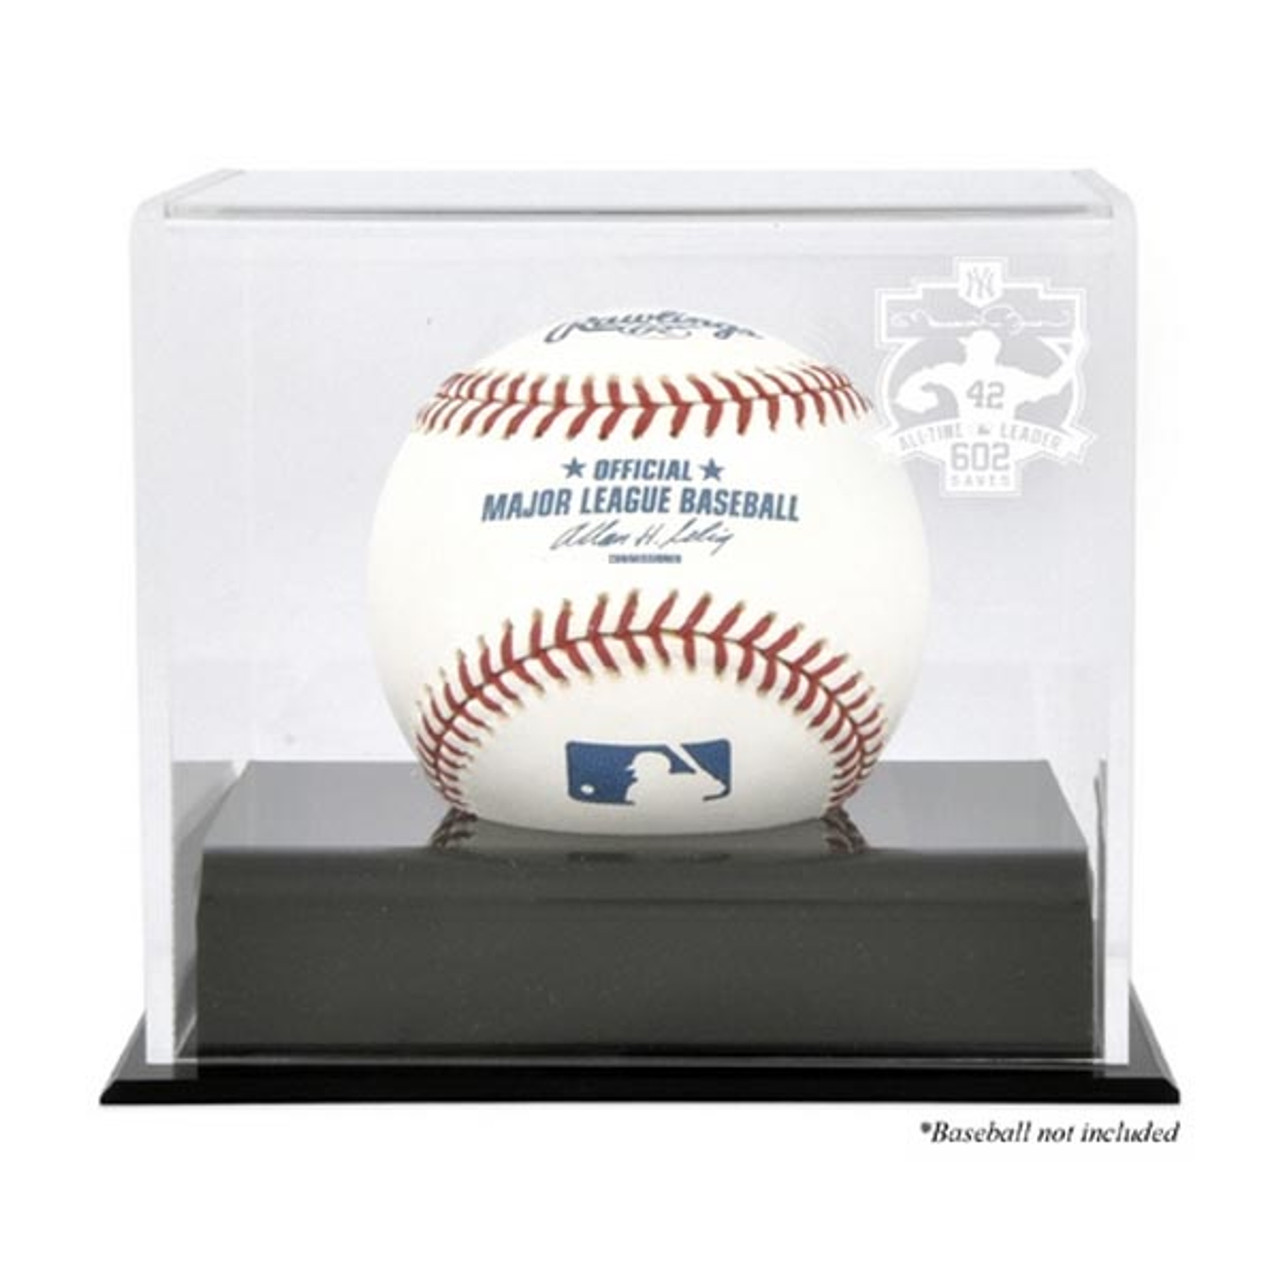 c90e2152349 Deluxe MLB Baseball Cube Mariano Rivera 602 Saves Display Case ...